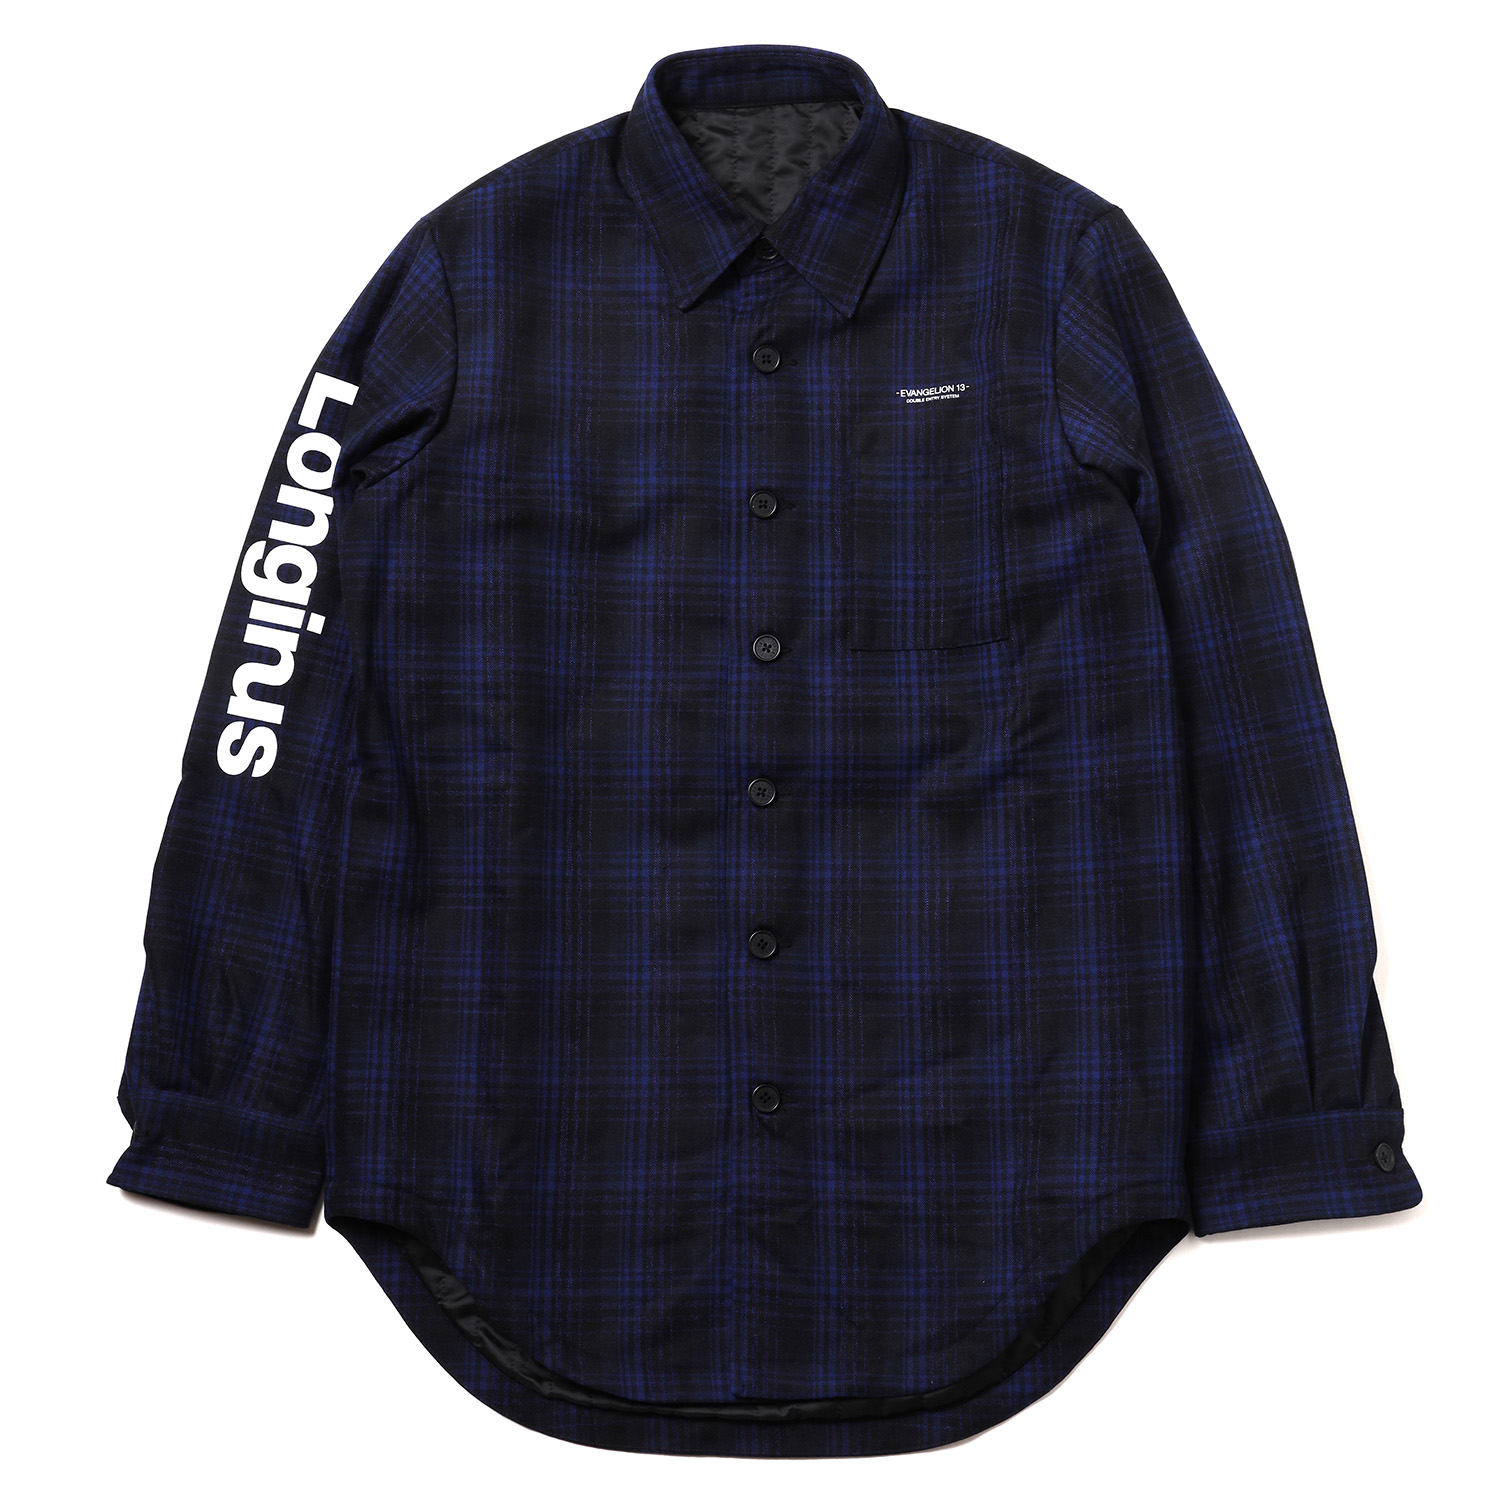 EVANGELION XIII QUILTING FLANNEL CHECK SHIRTS JKT (BLUE CHECK)